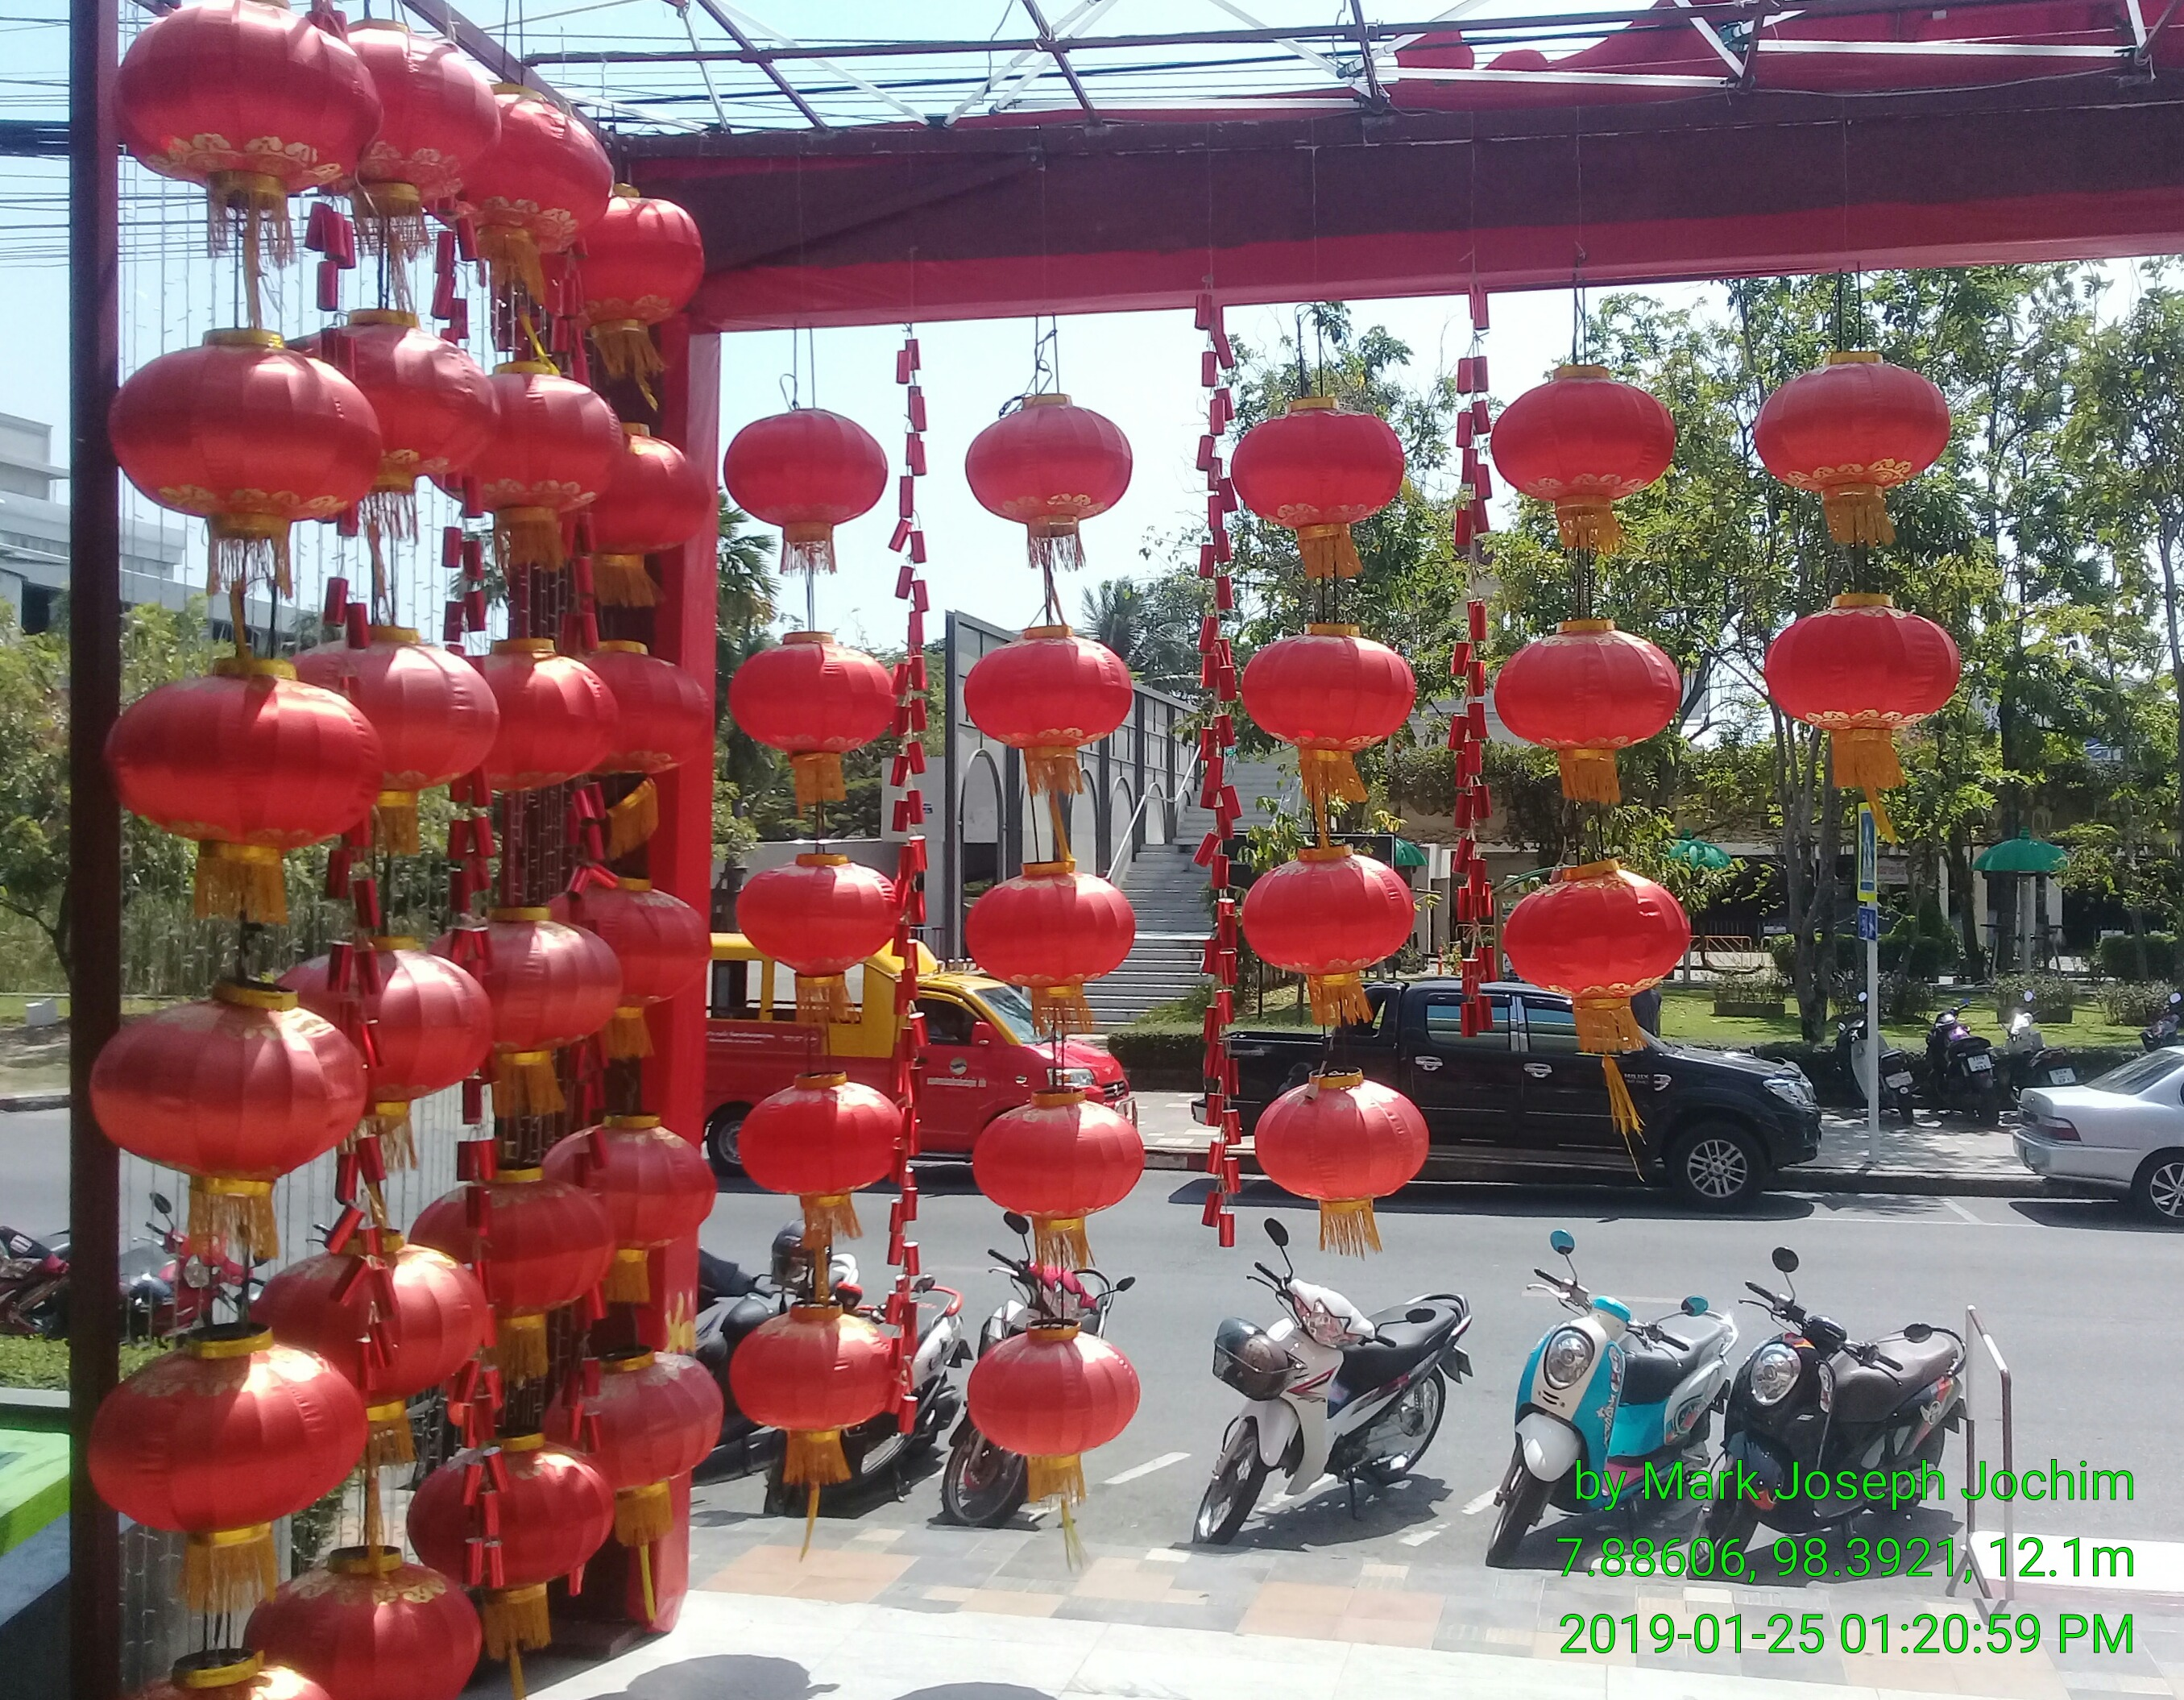 Chinese New Year decorations at Limelight Avenue in Phuket, Thaland. January 25, 2019